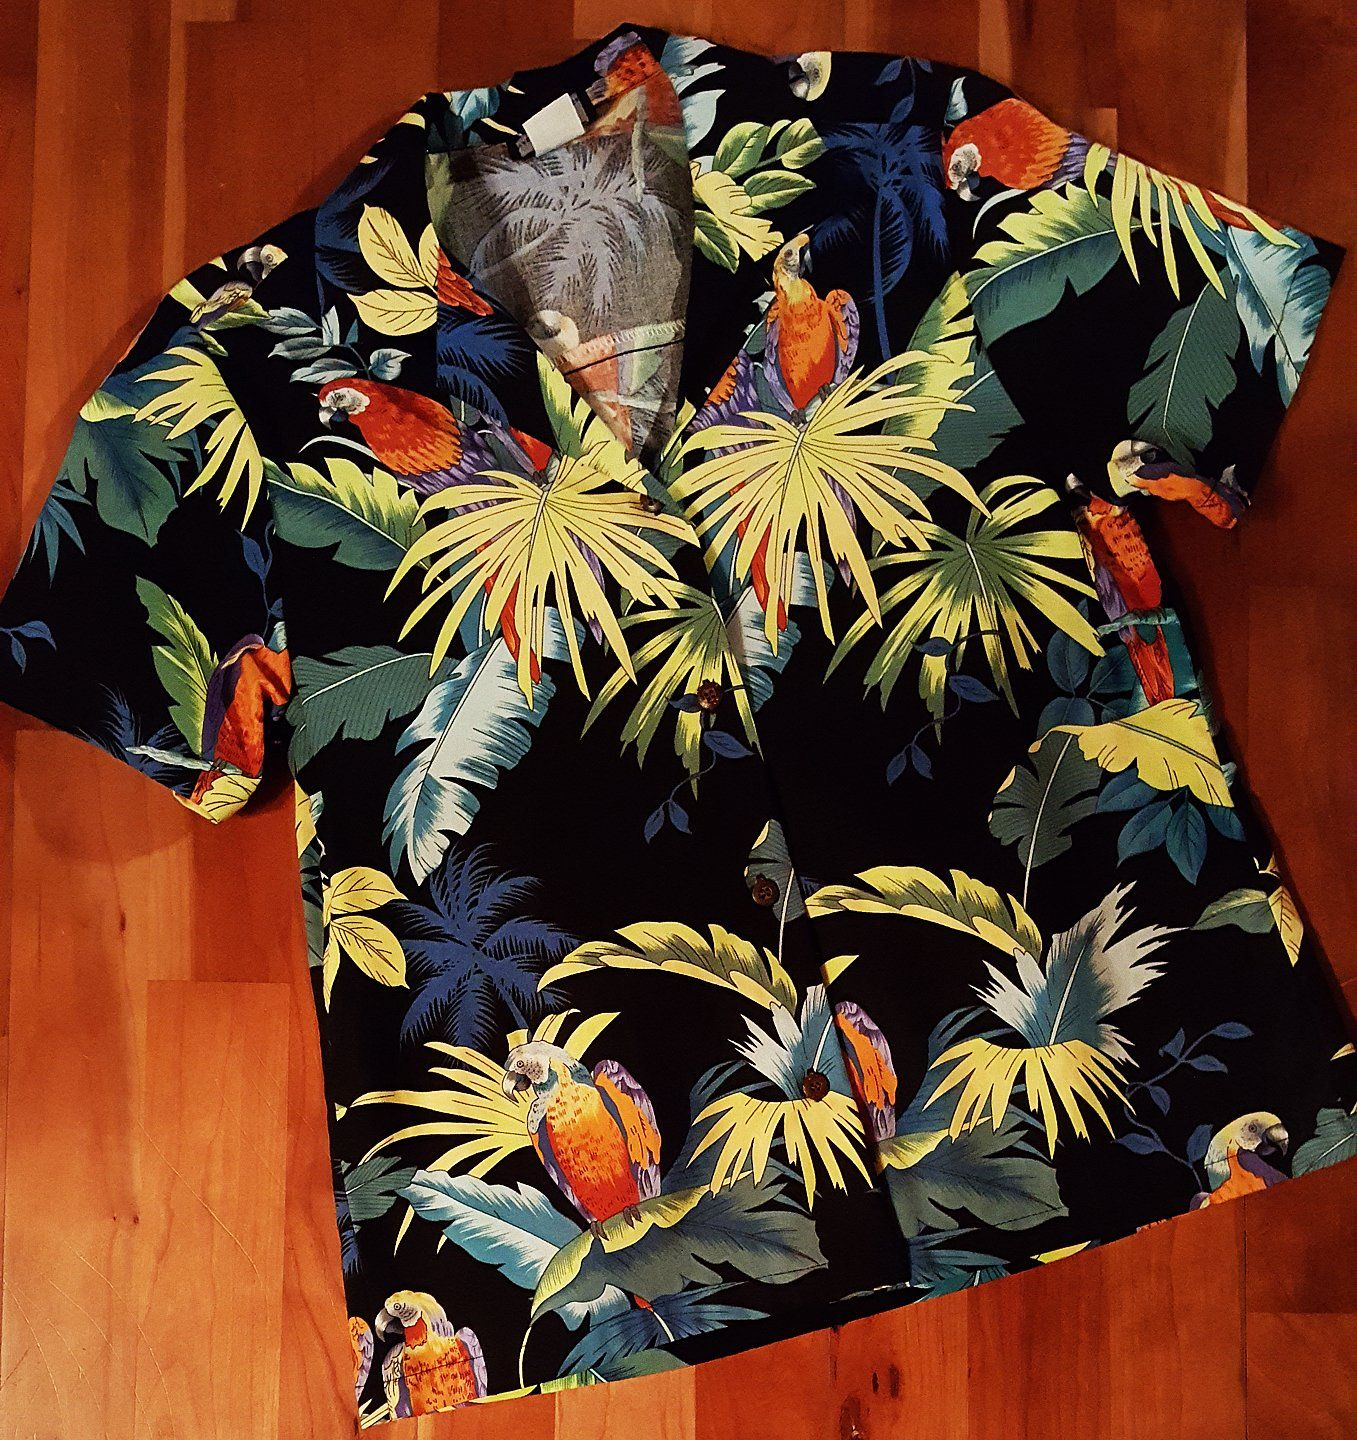 a53a0018 Ladies Parrot Hawaiian Camp Shirt by RJC - Open Collar - Coconut Buttons -  100% Cotton - Matching Men's, Girl's & Boy's Made in Hawaii - USA